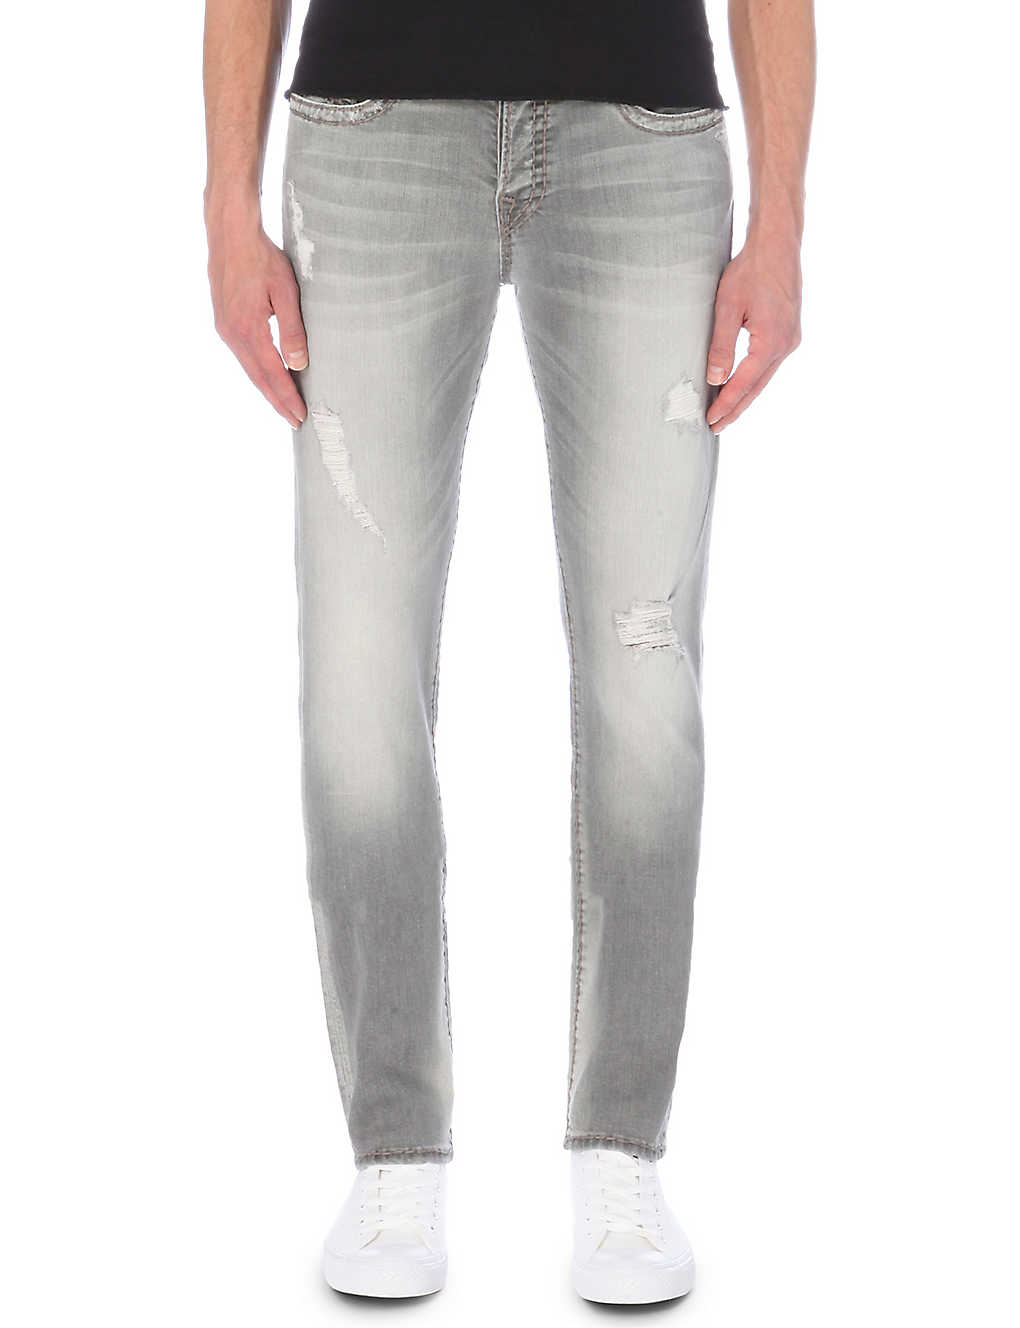 87d989d46 TRUE RELIGION - Rocco no flap slim-fit skinny jeans | Selfridges.com